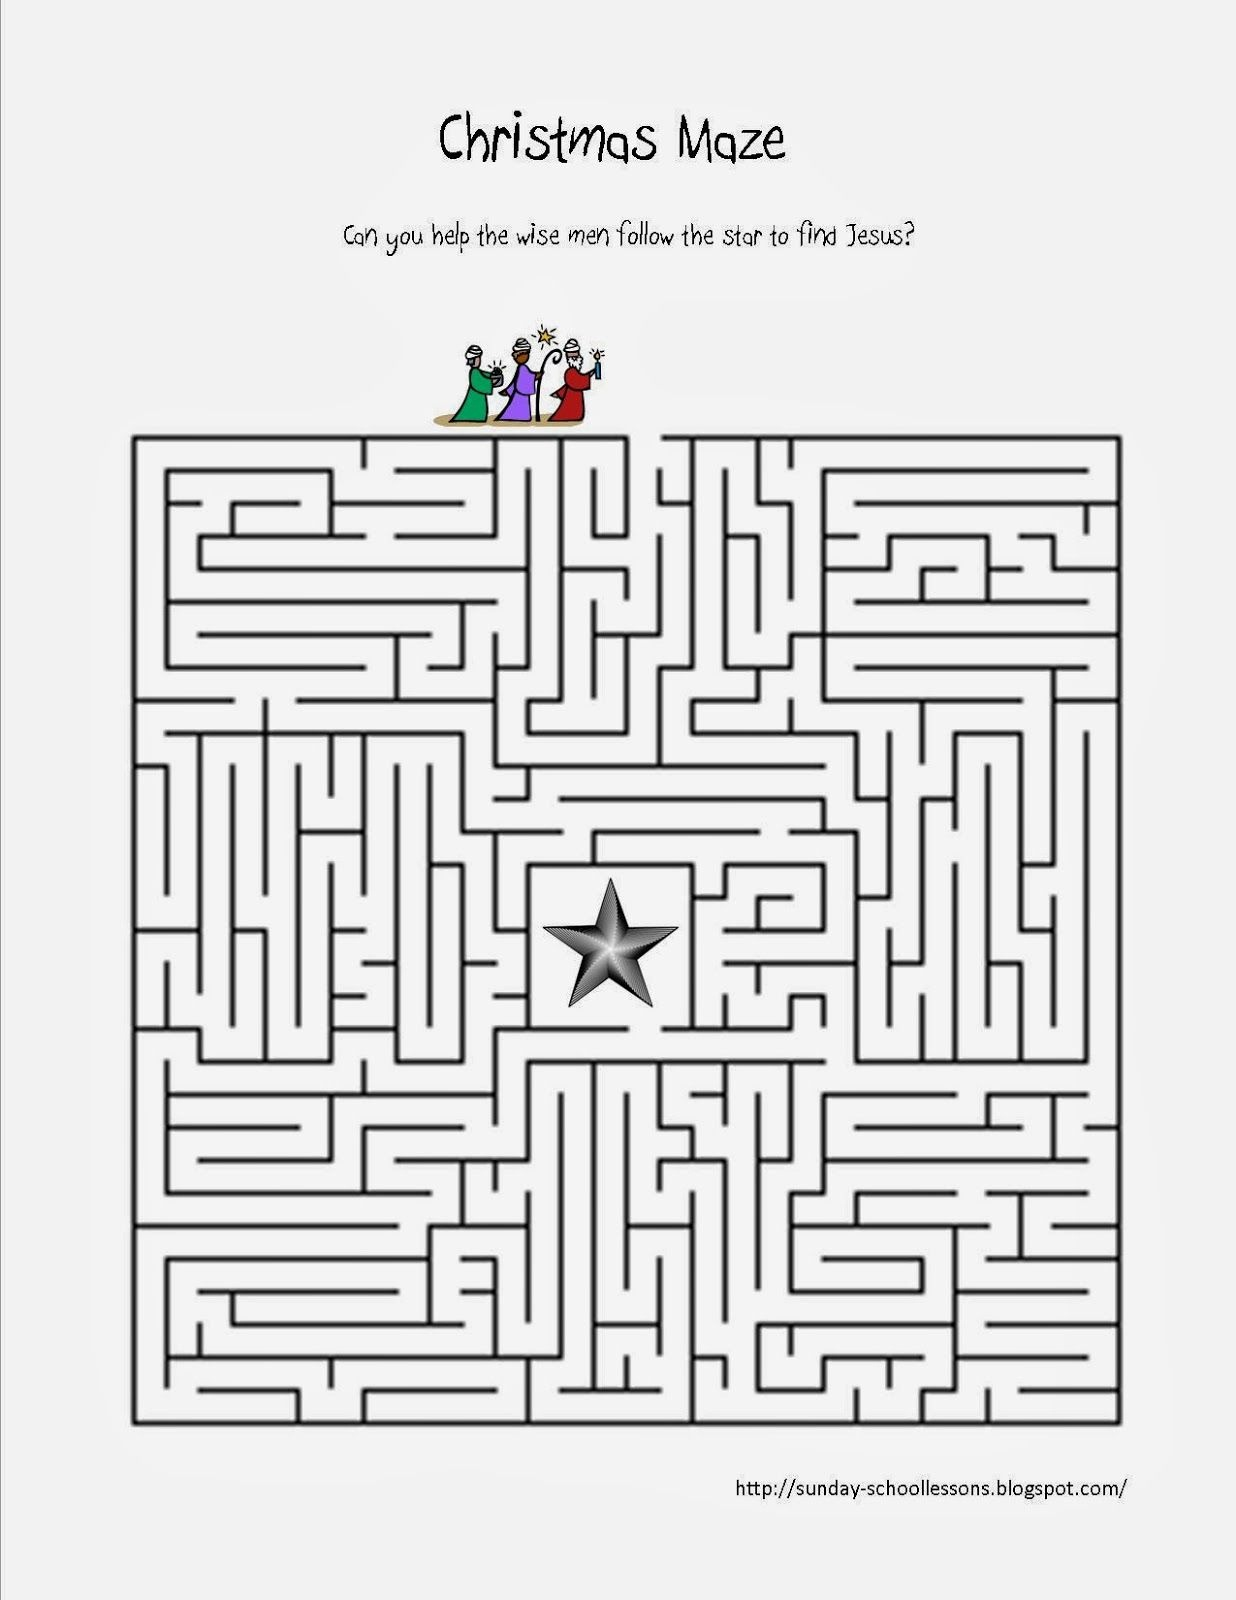 Print This Free Christmas Maze About Following The Star To Find - Free Sunday School Printables